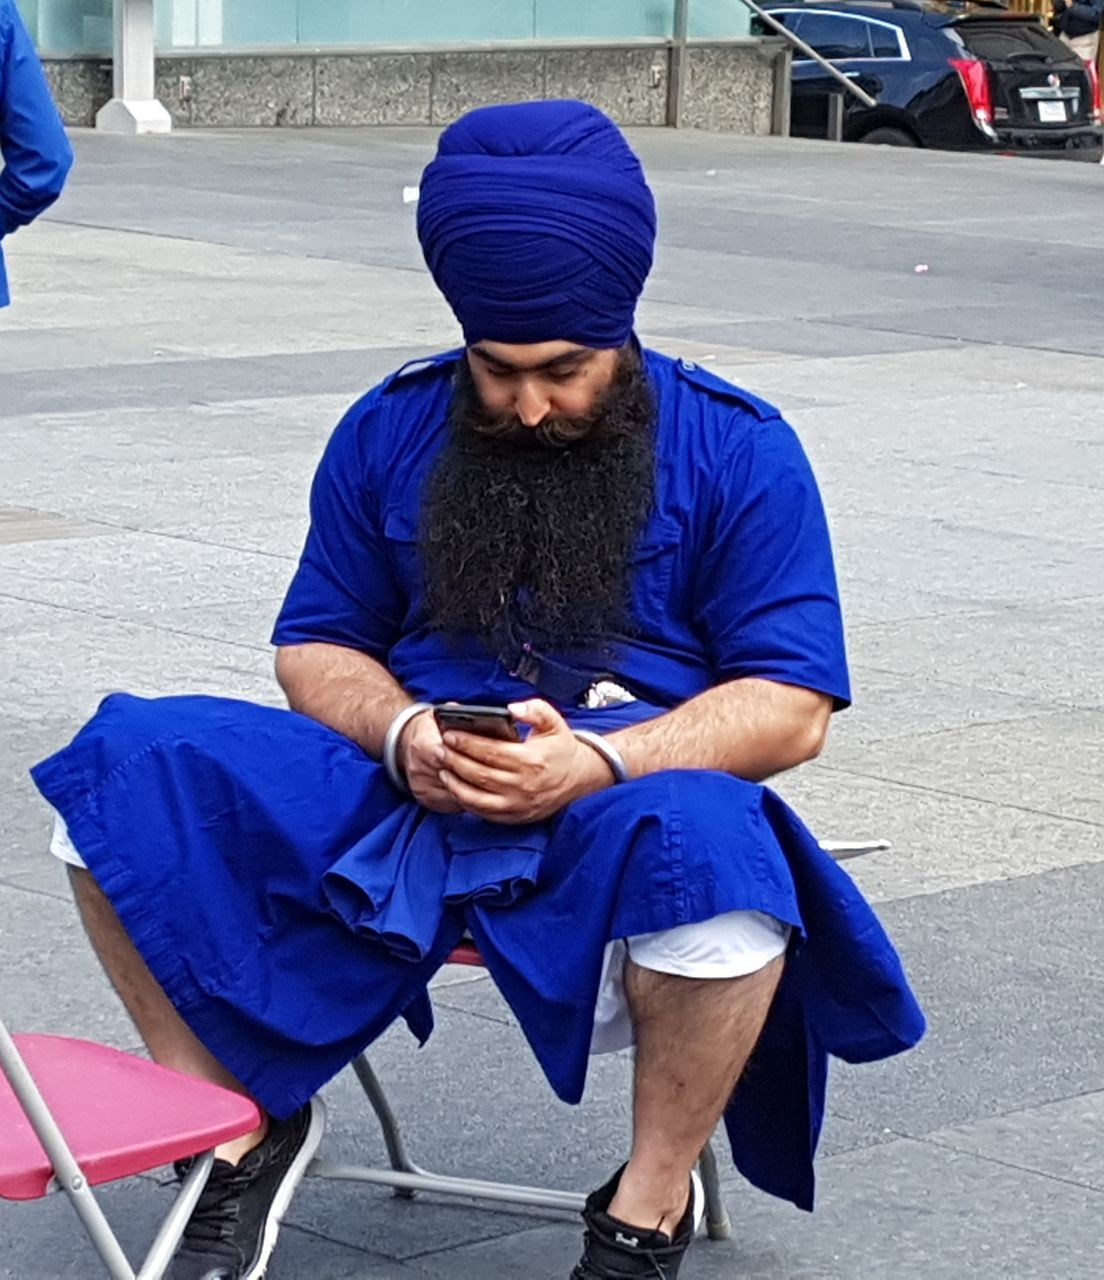 sitting, street, real people, one person, full length, front view, looking down, outdoors, road, day, holding, sidewalk, lifestyles, young adult, adult, people